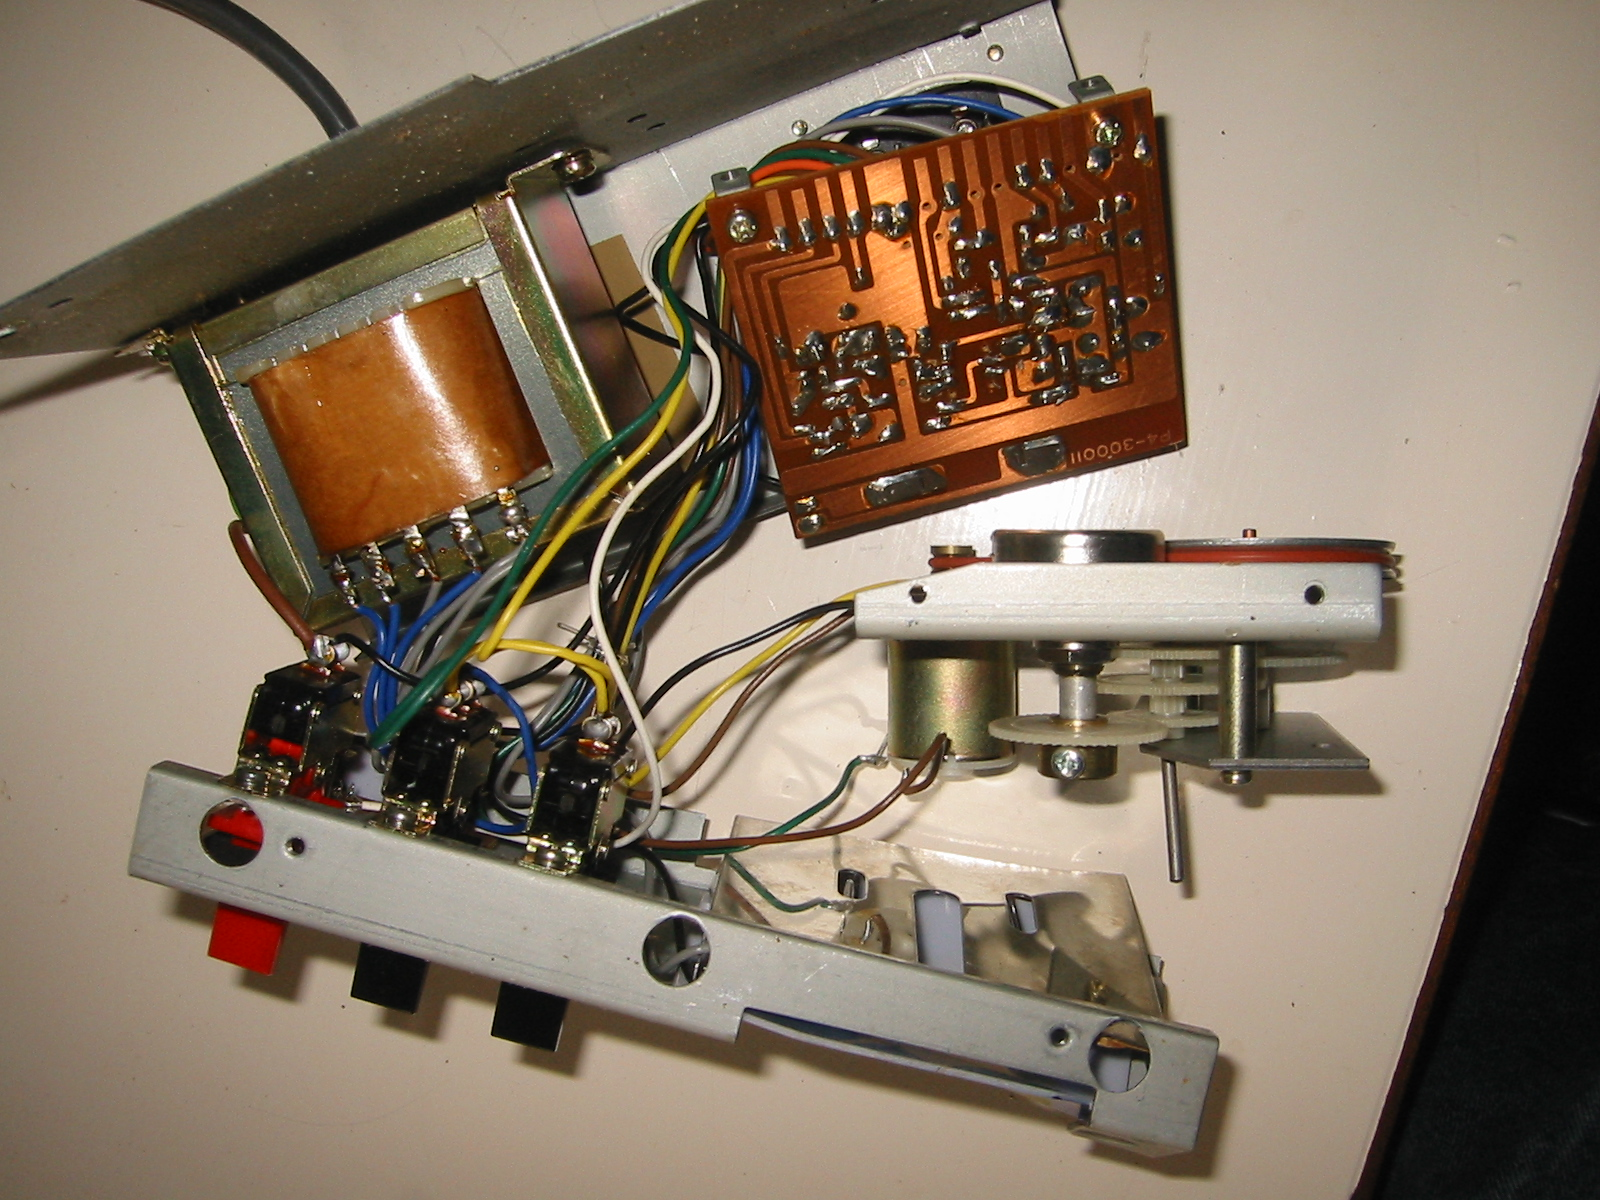 hight resolution of rotator controller innards